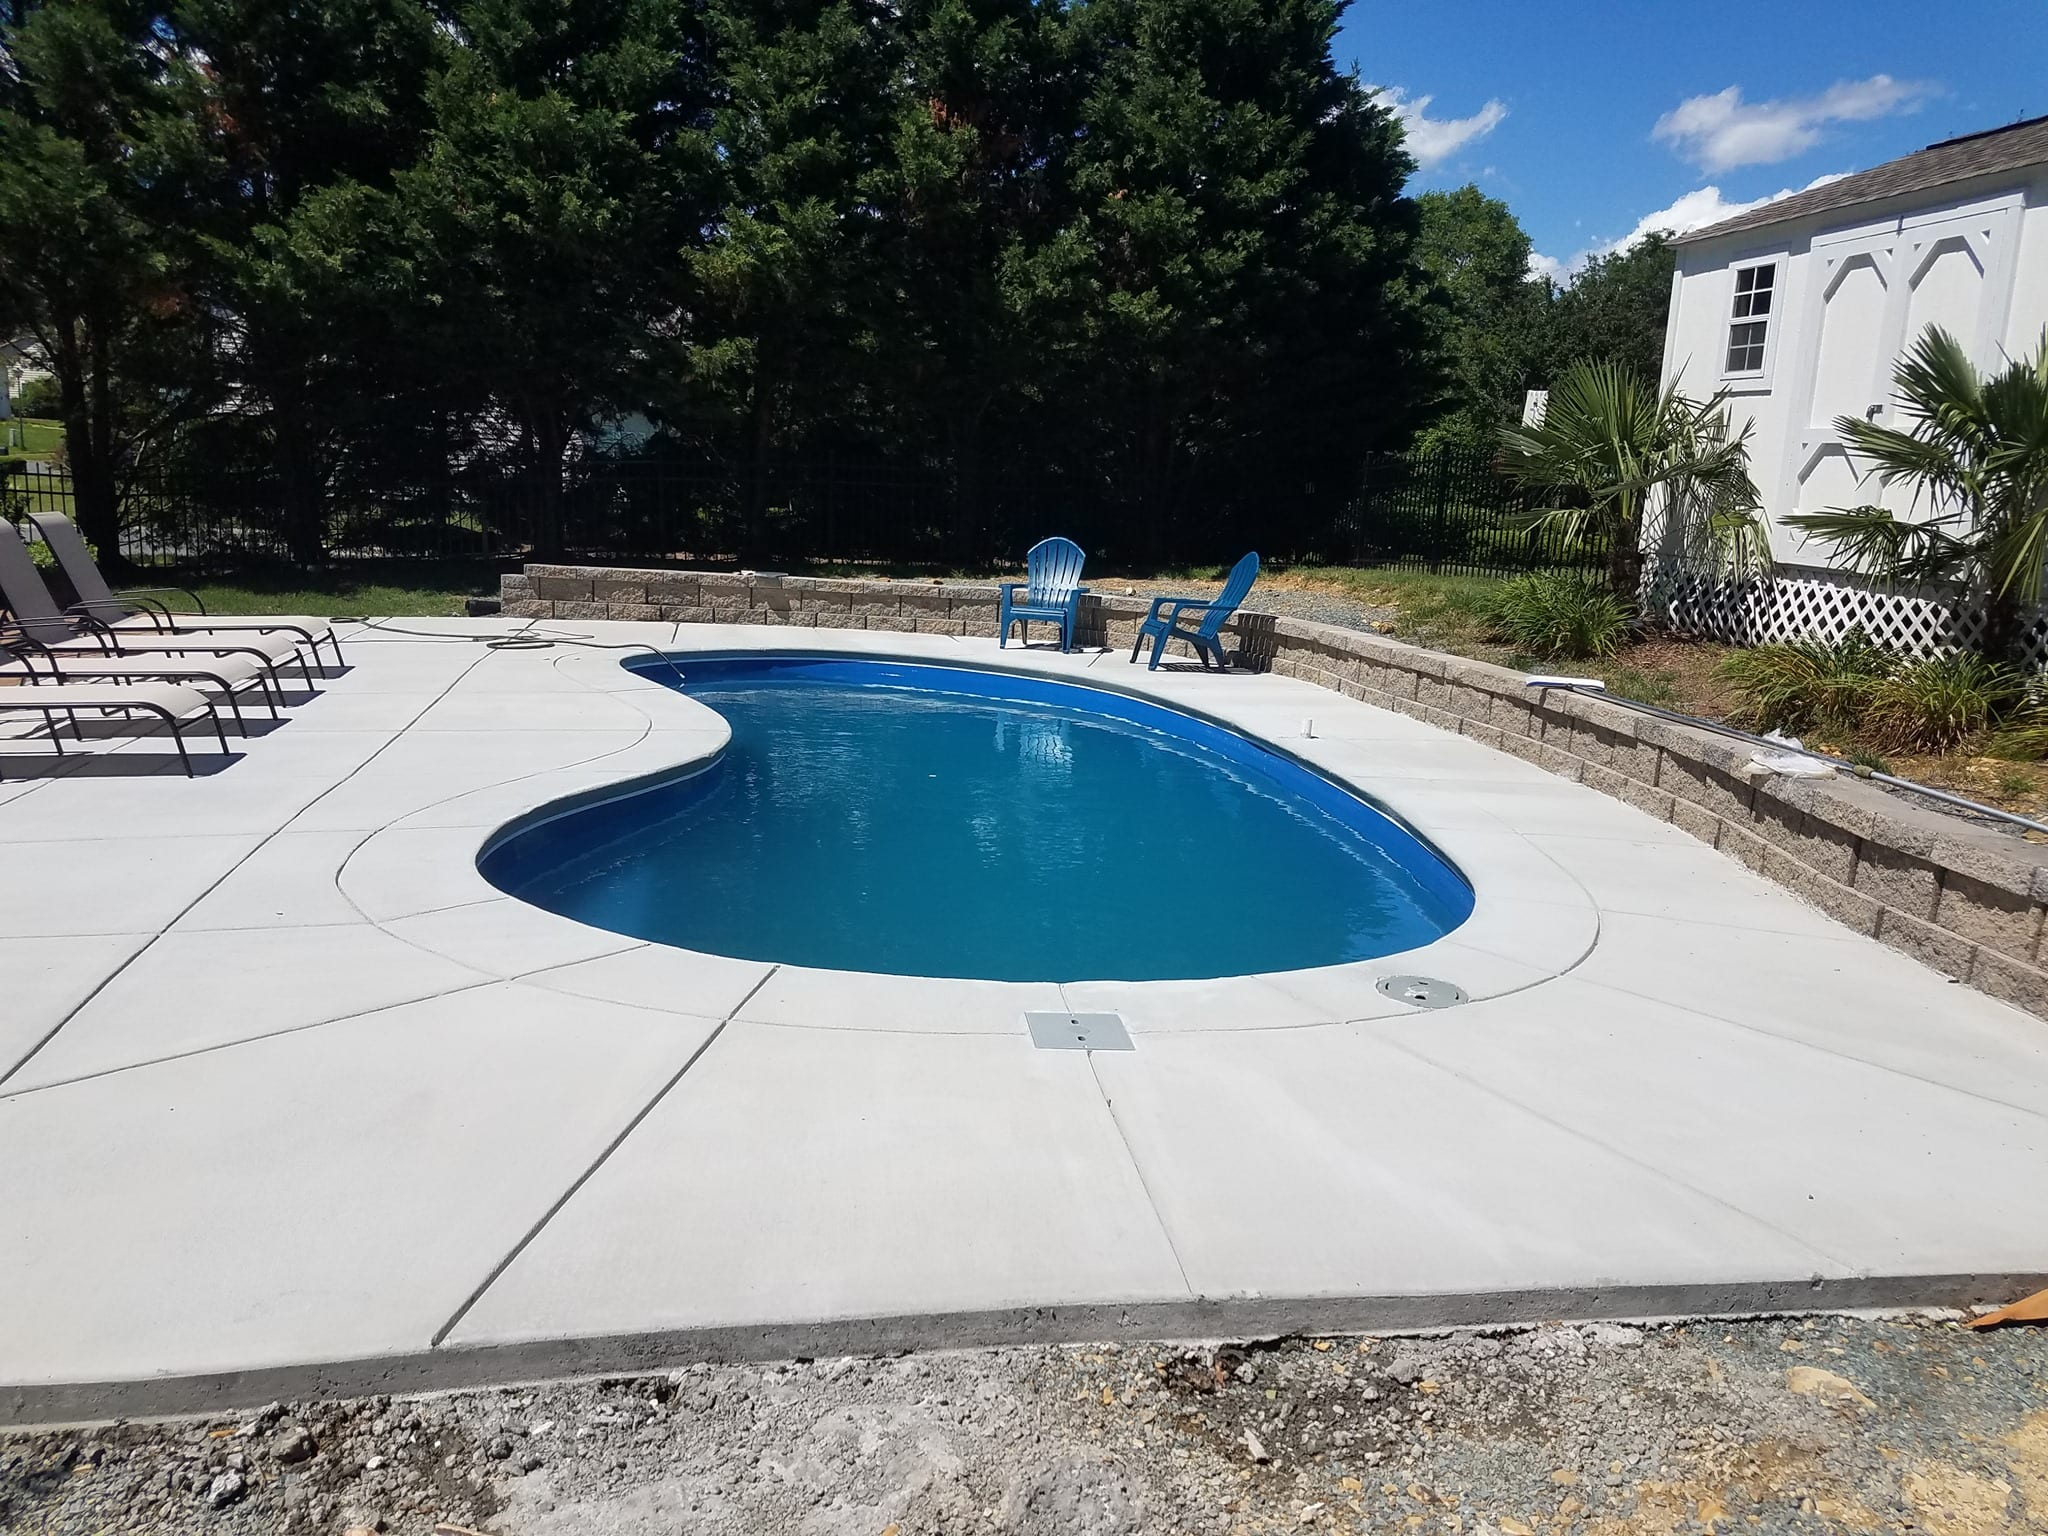 Nick's Pool Service | Fort Mill, SC | Concrete built-in pool in yard